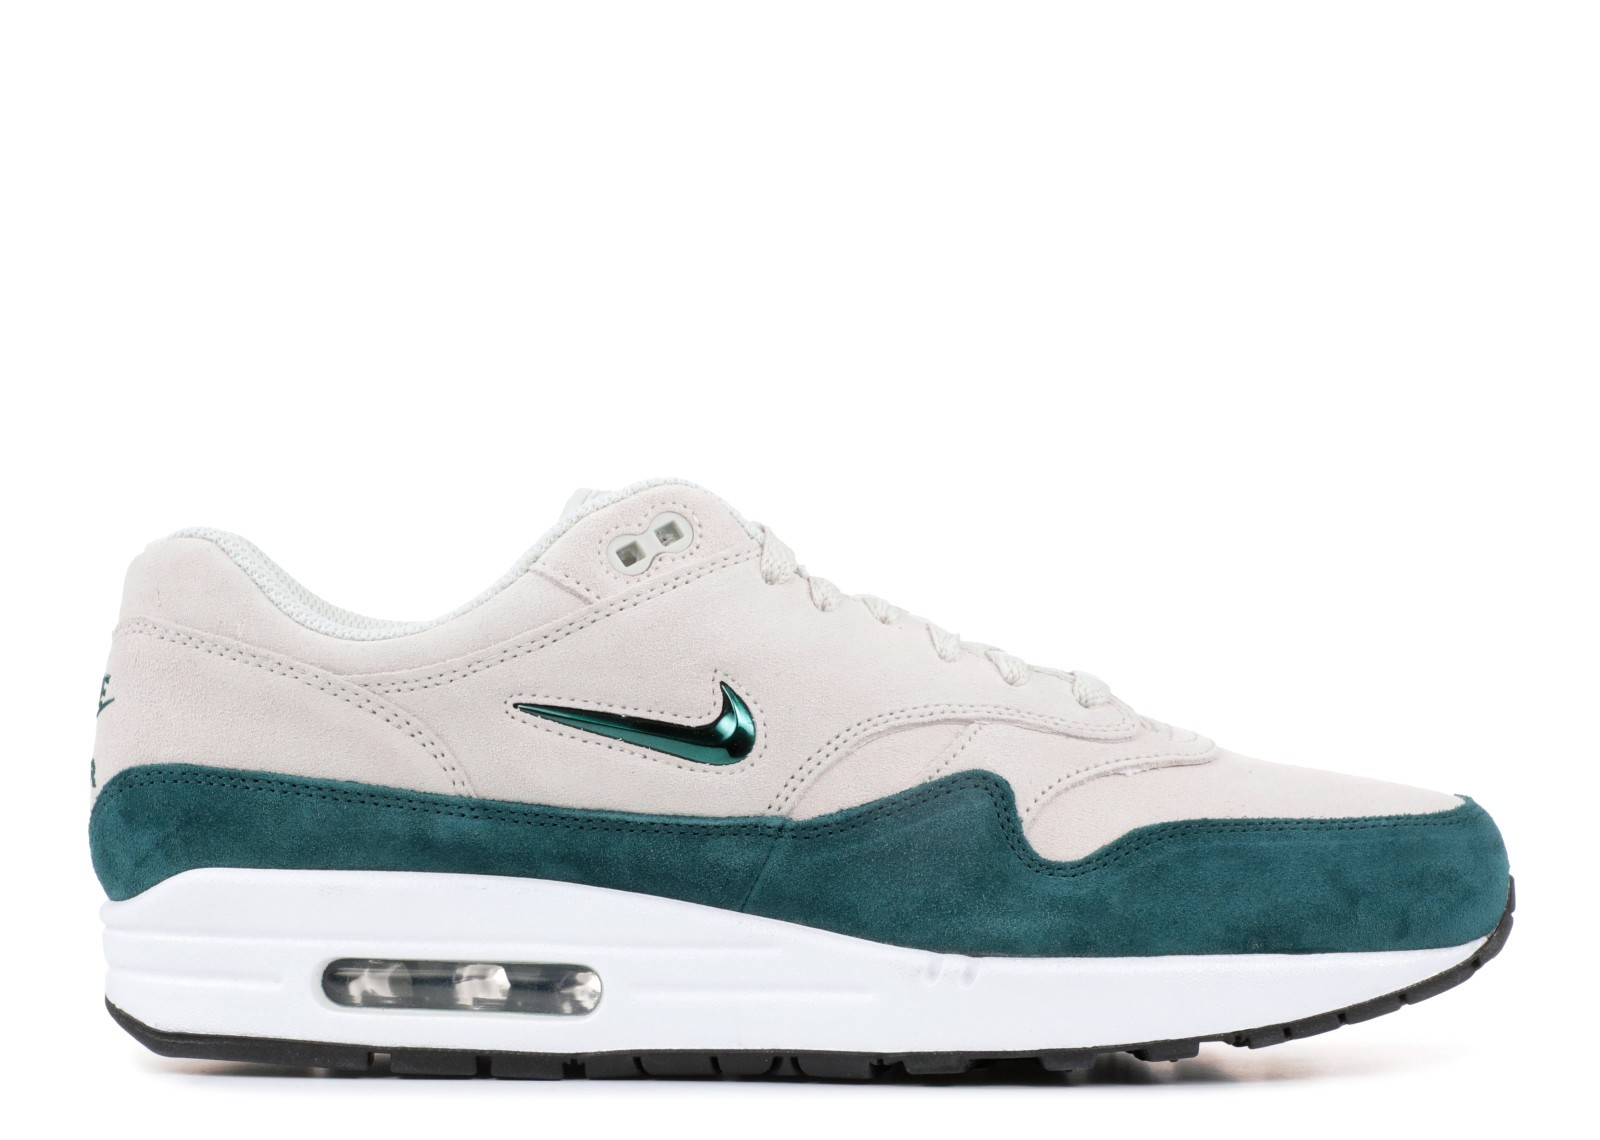 Nike Air Max 1 SC Jewel (Atomic Teal) Homme Chaussures 918354-003